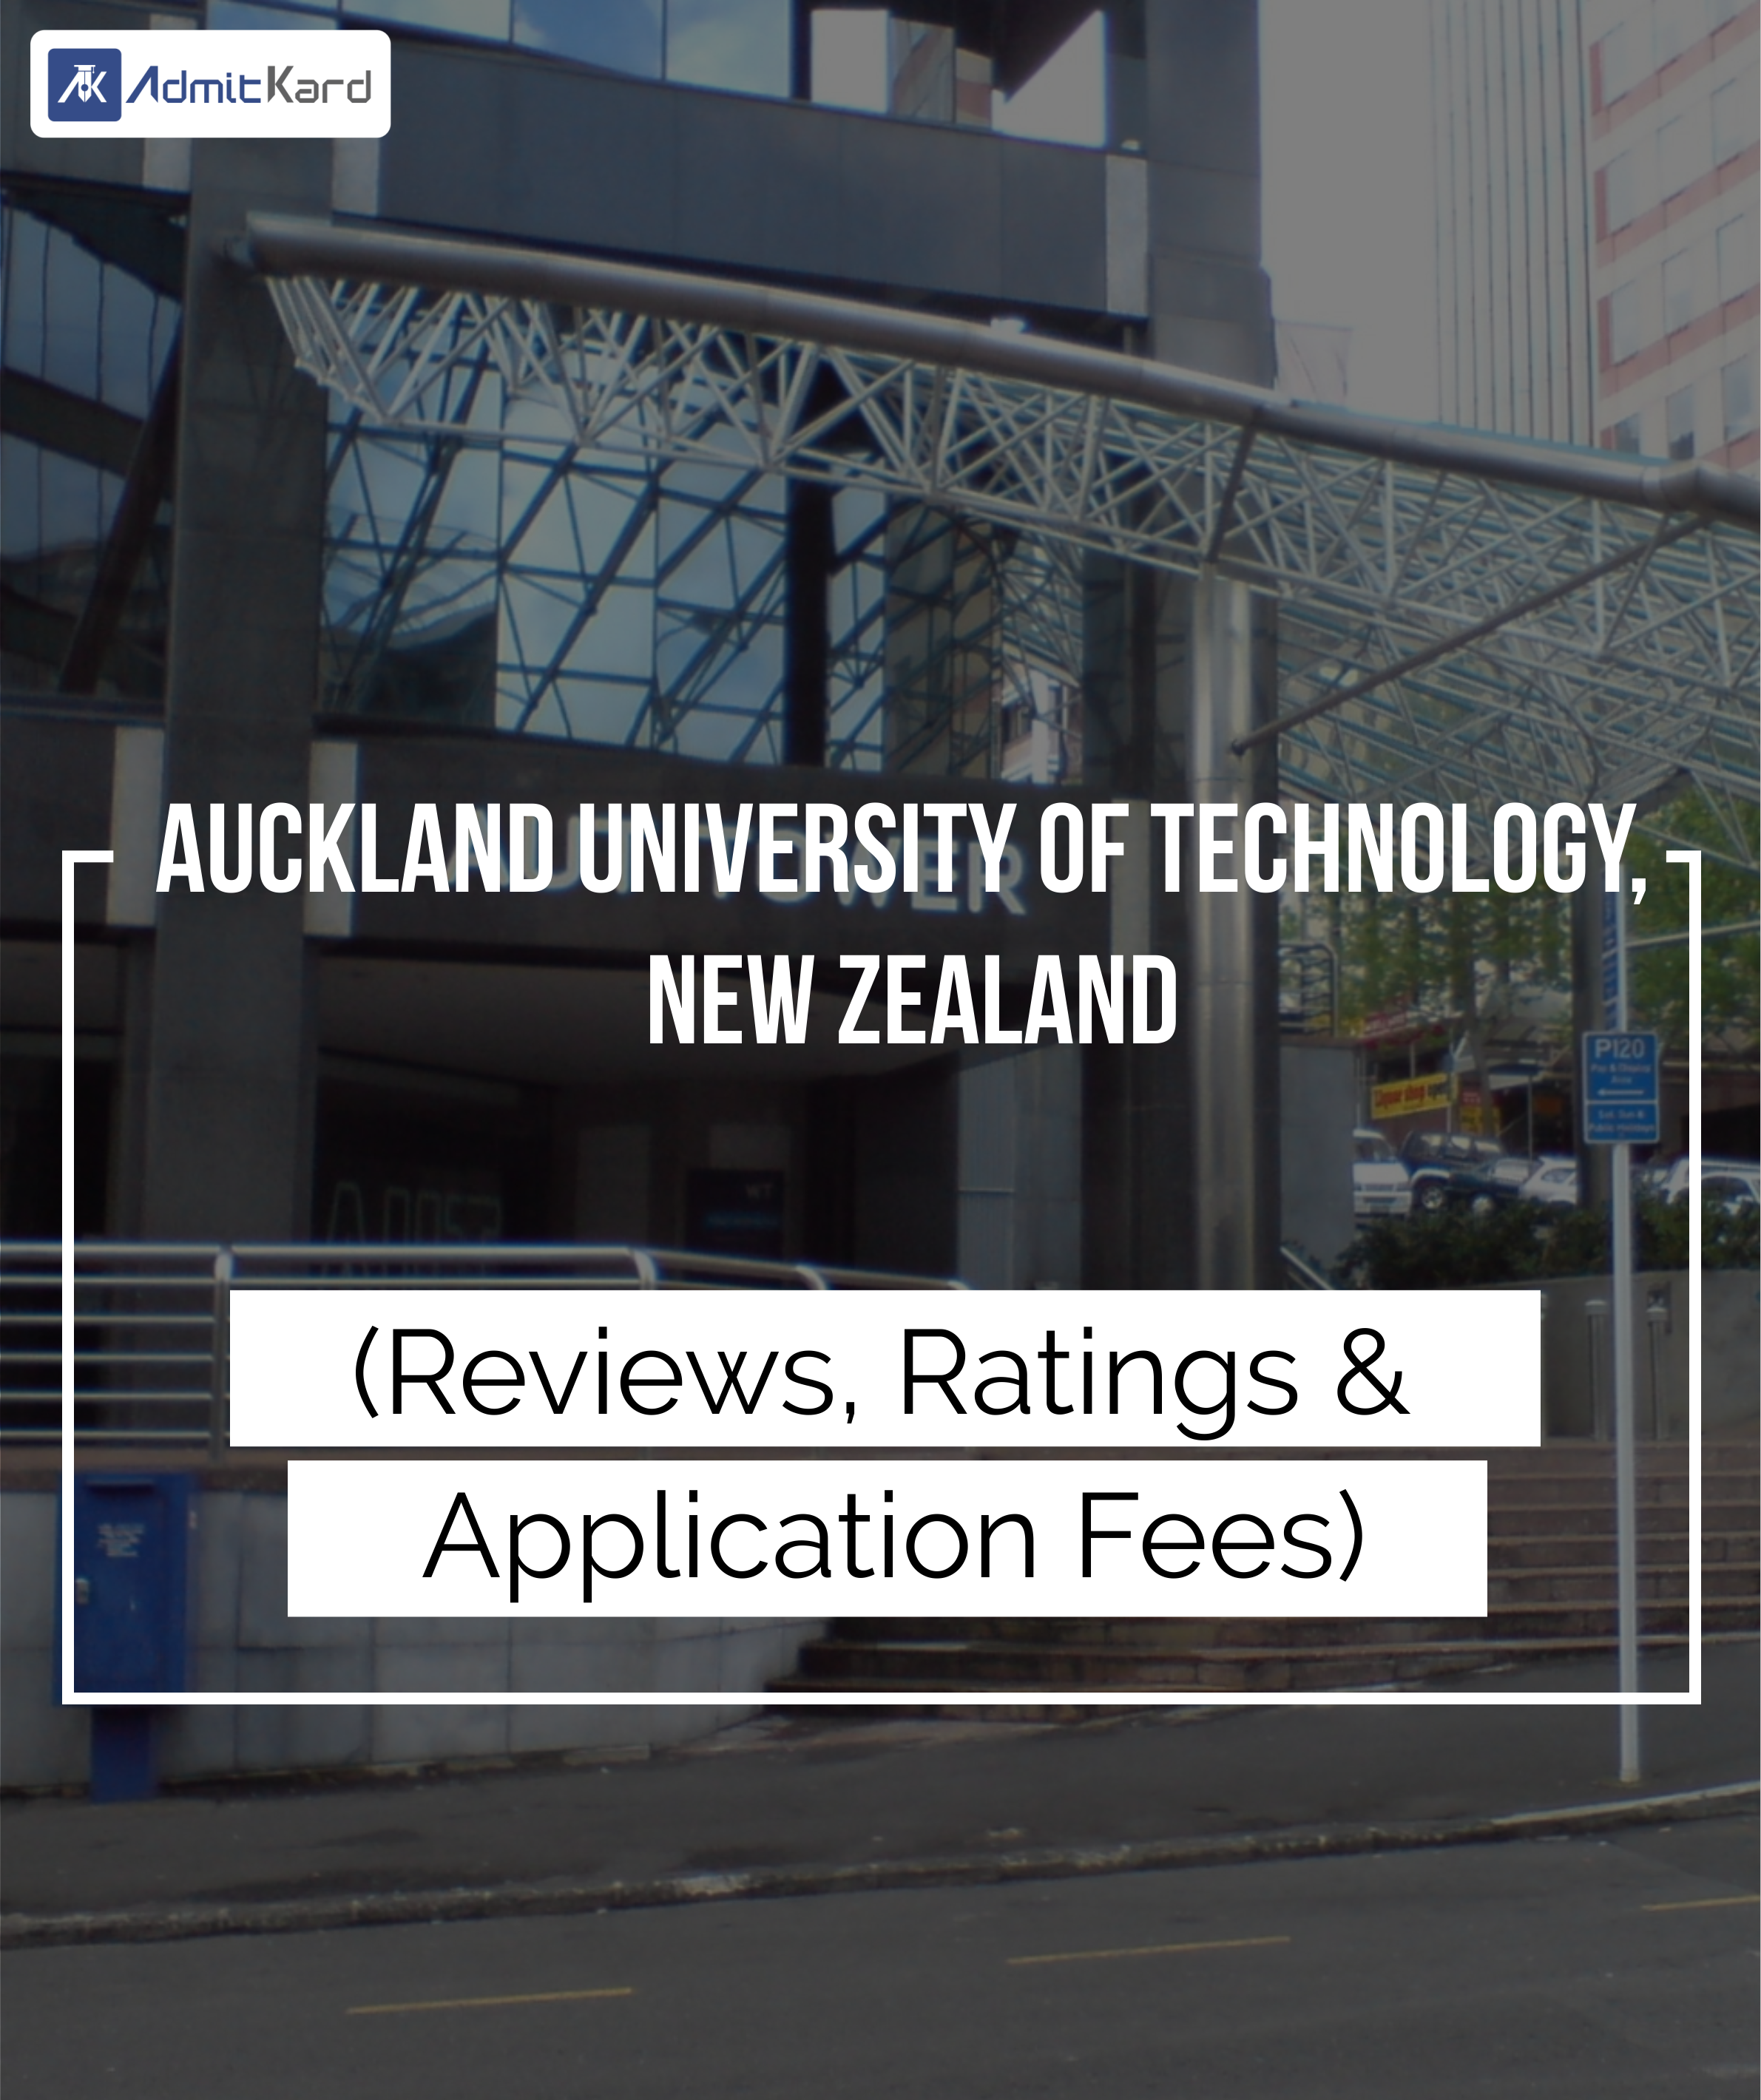 Auckland University Of Technology Is One Of The Most Reputed